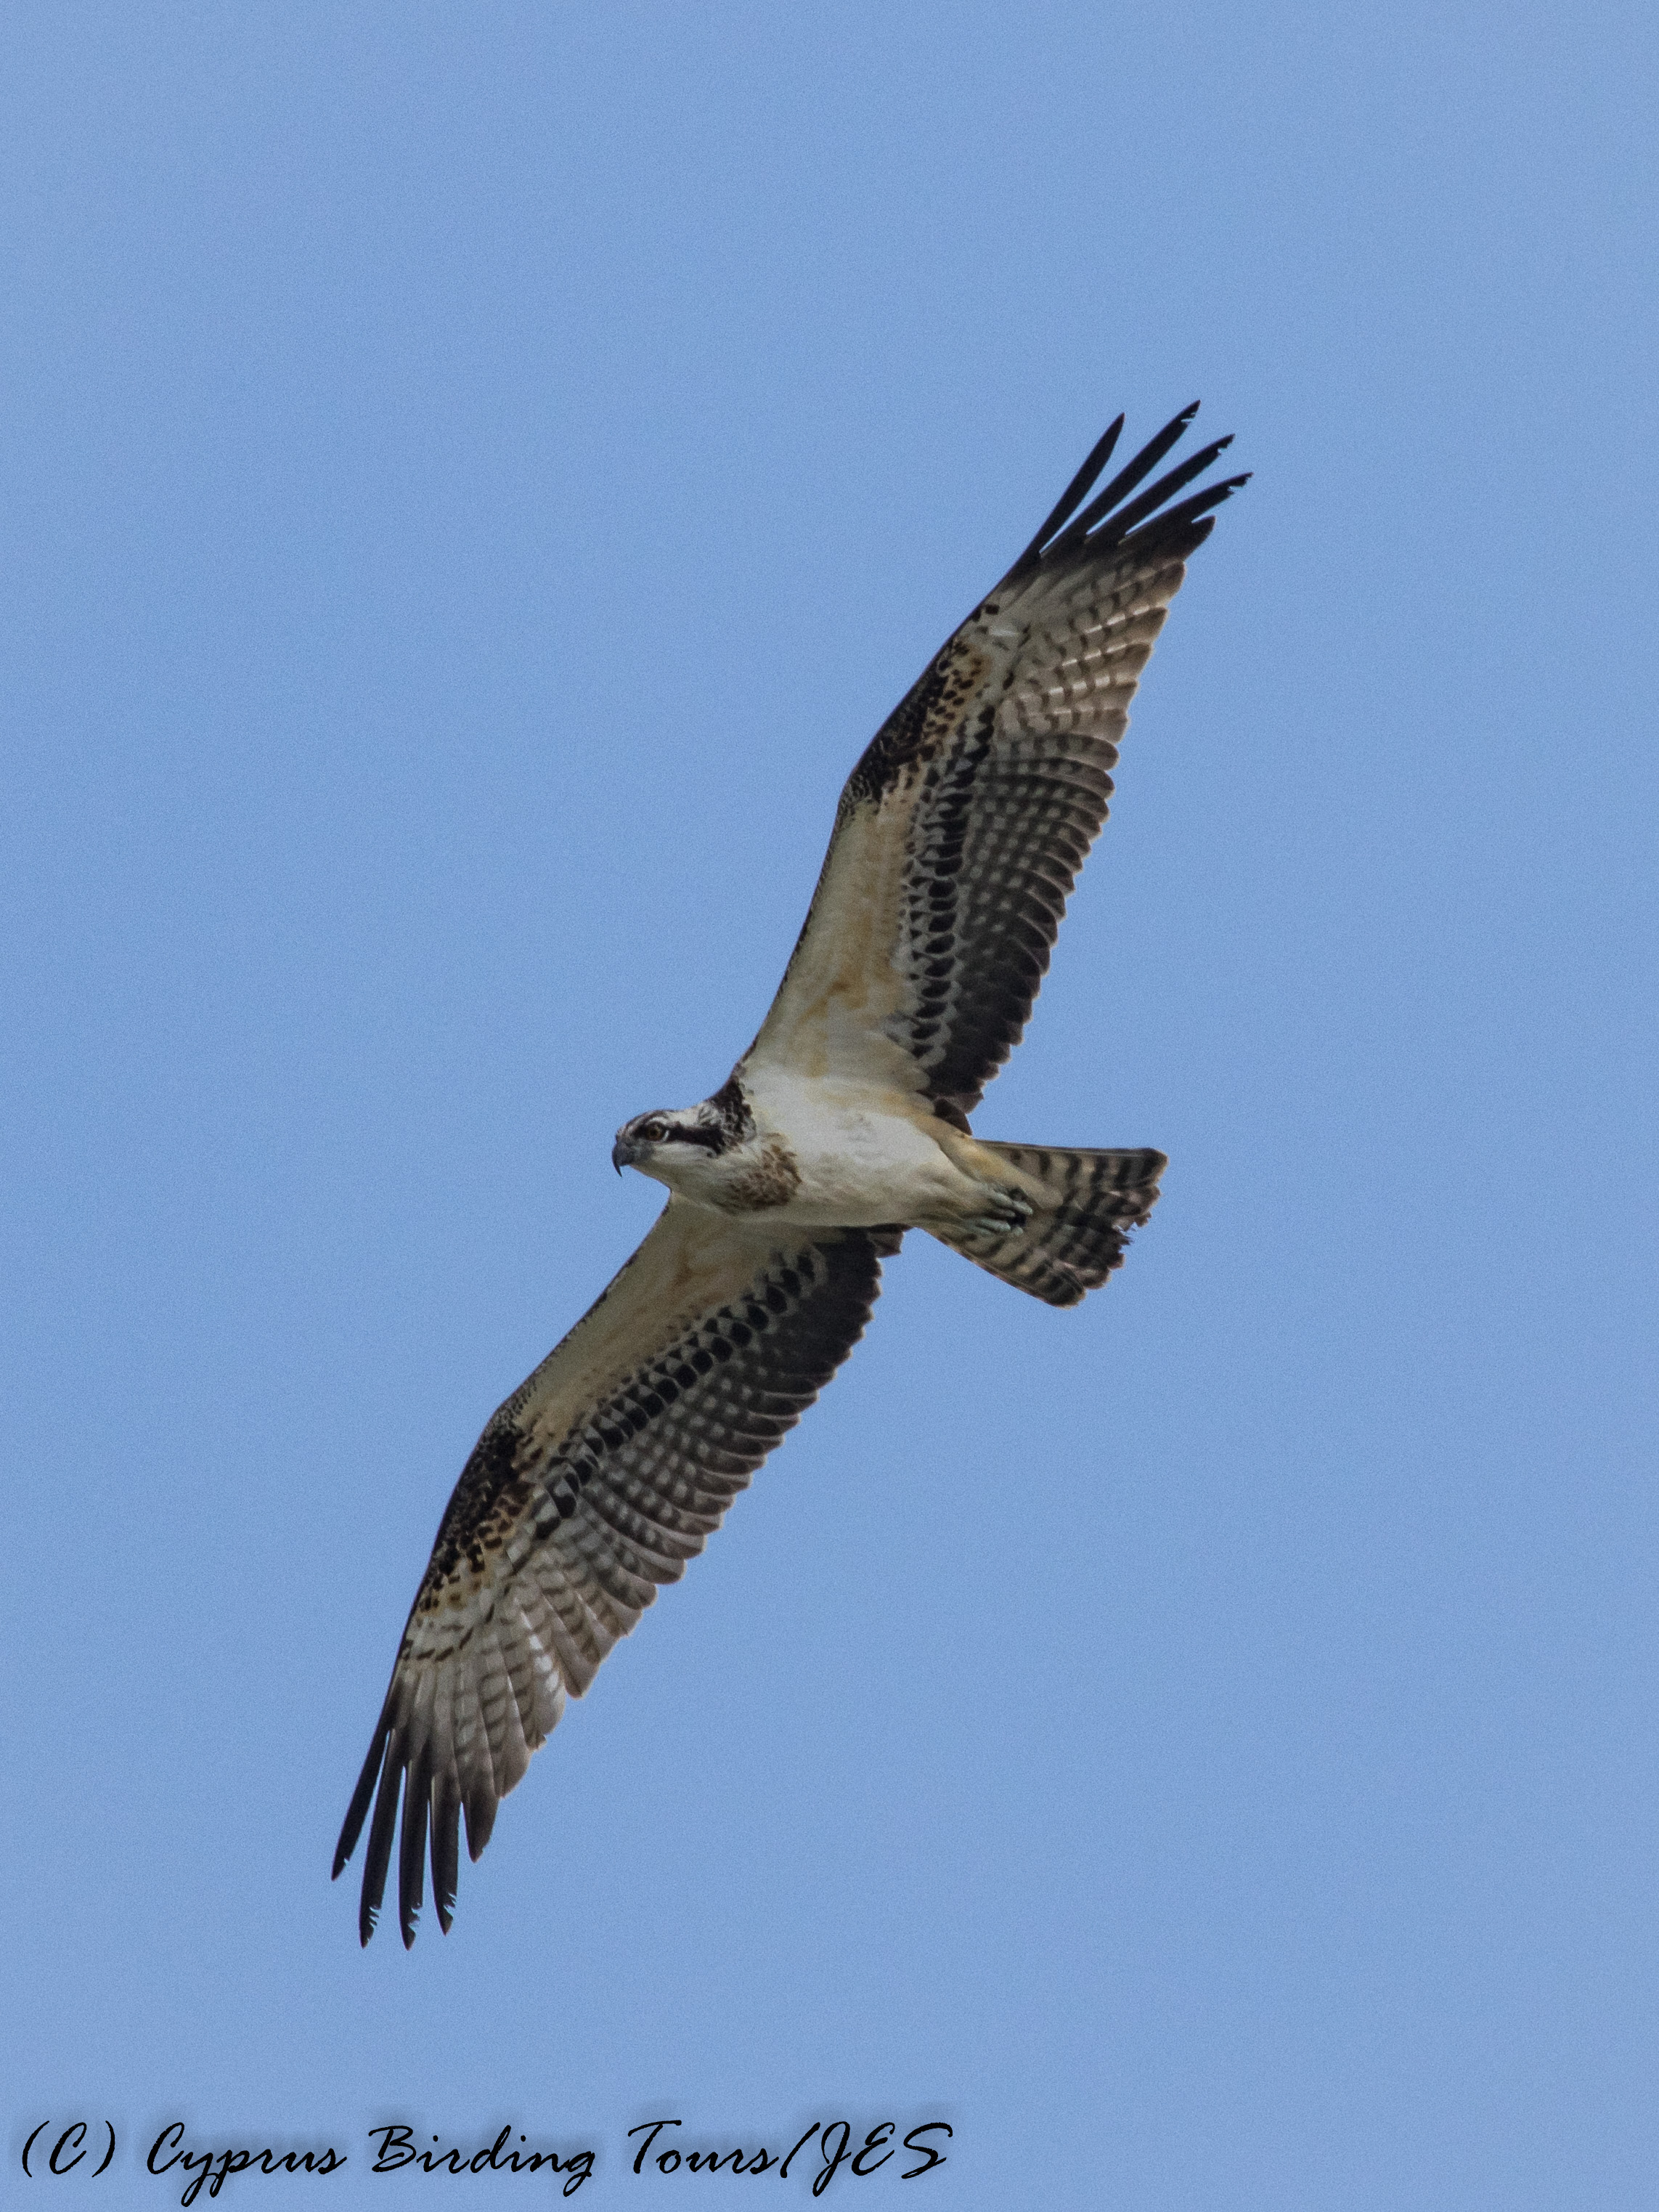 Osprey, Akhna Dam 27th September 2016 (c) Cyprus Birding Tours